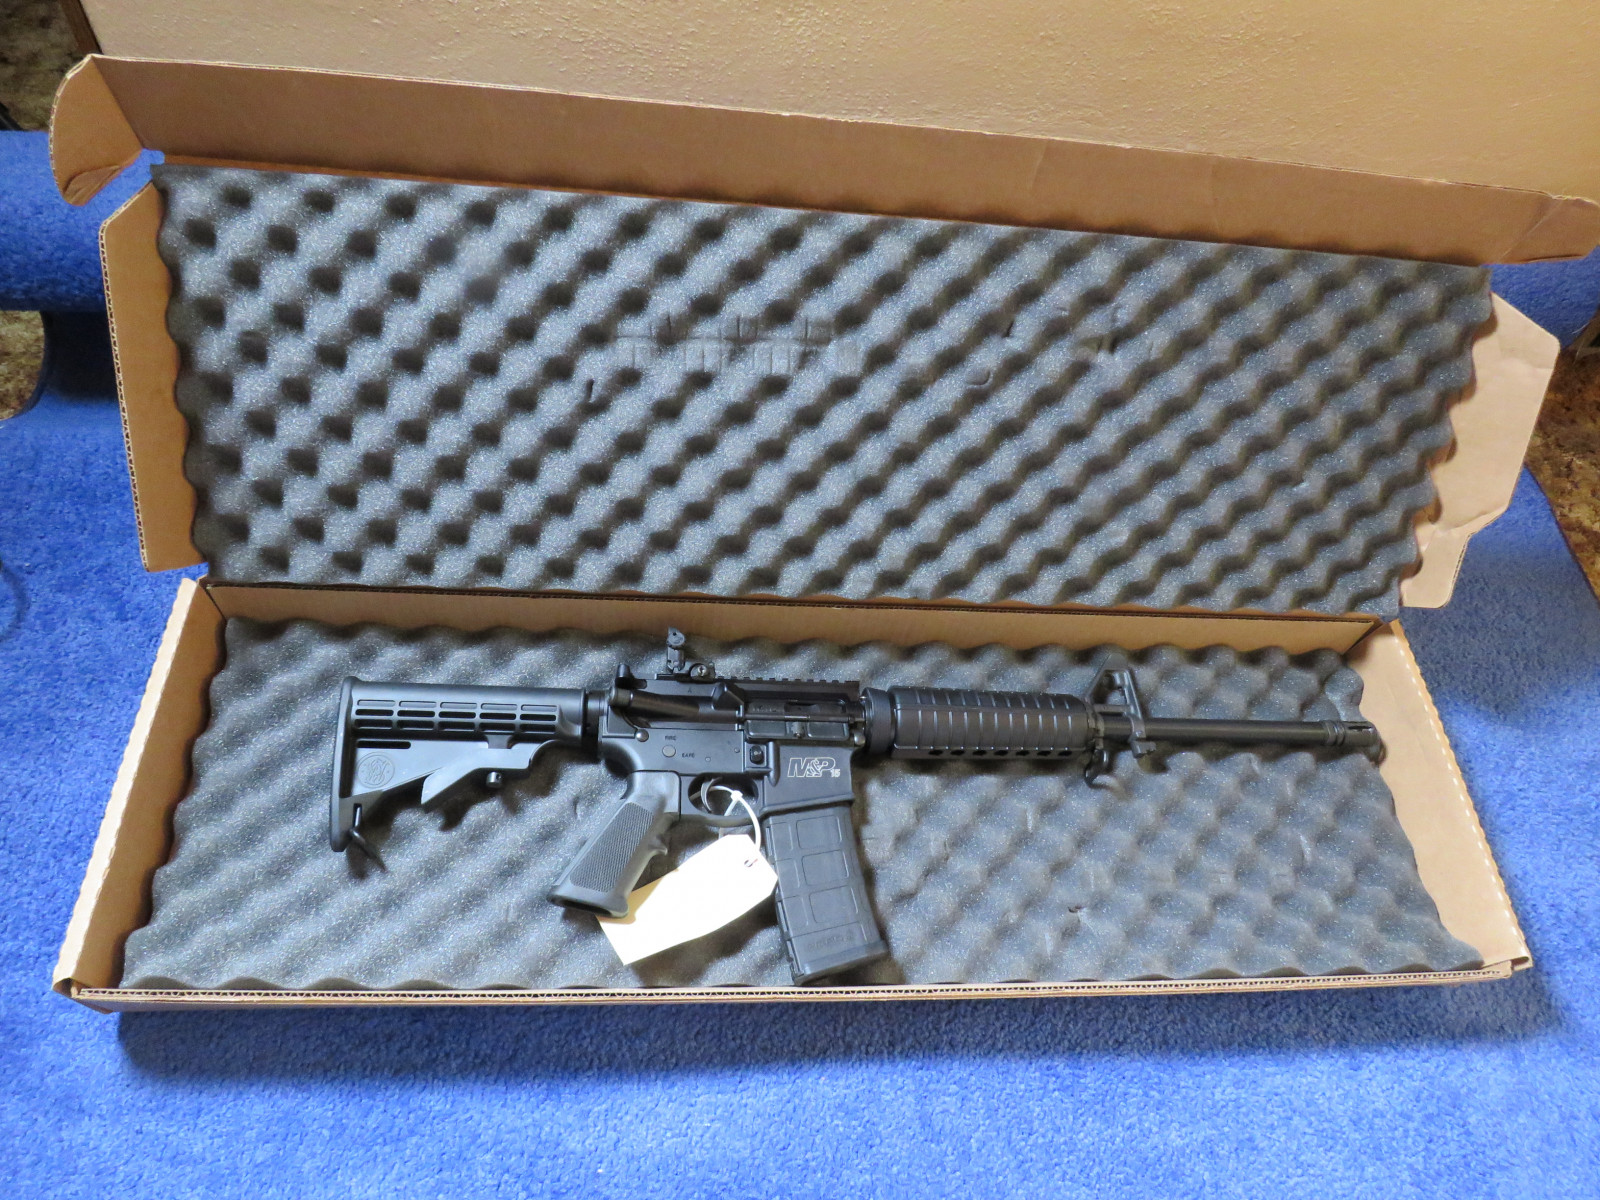 Smith & Wesson M&P15 Centerfire Rifle NIB NF - Image 1